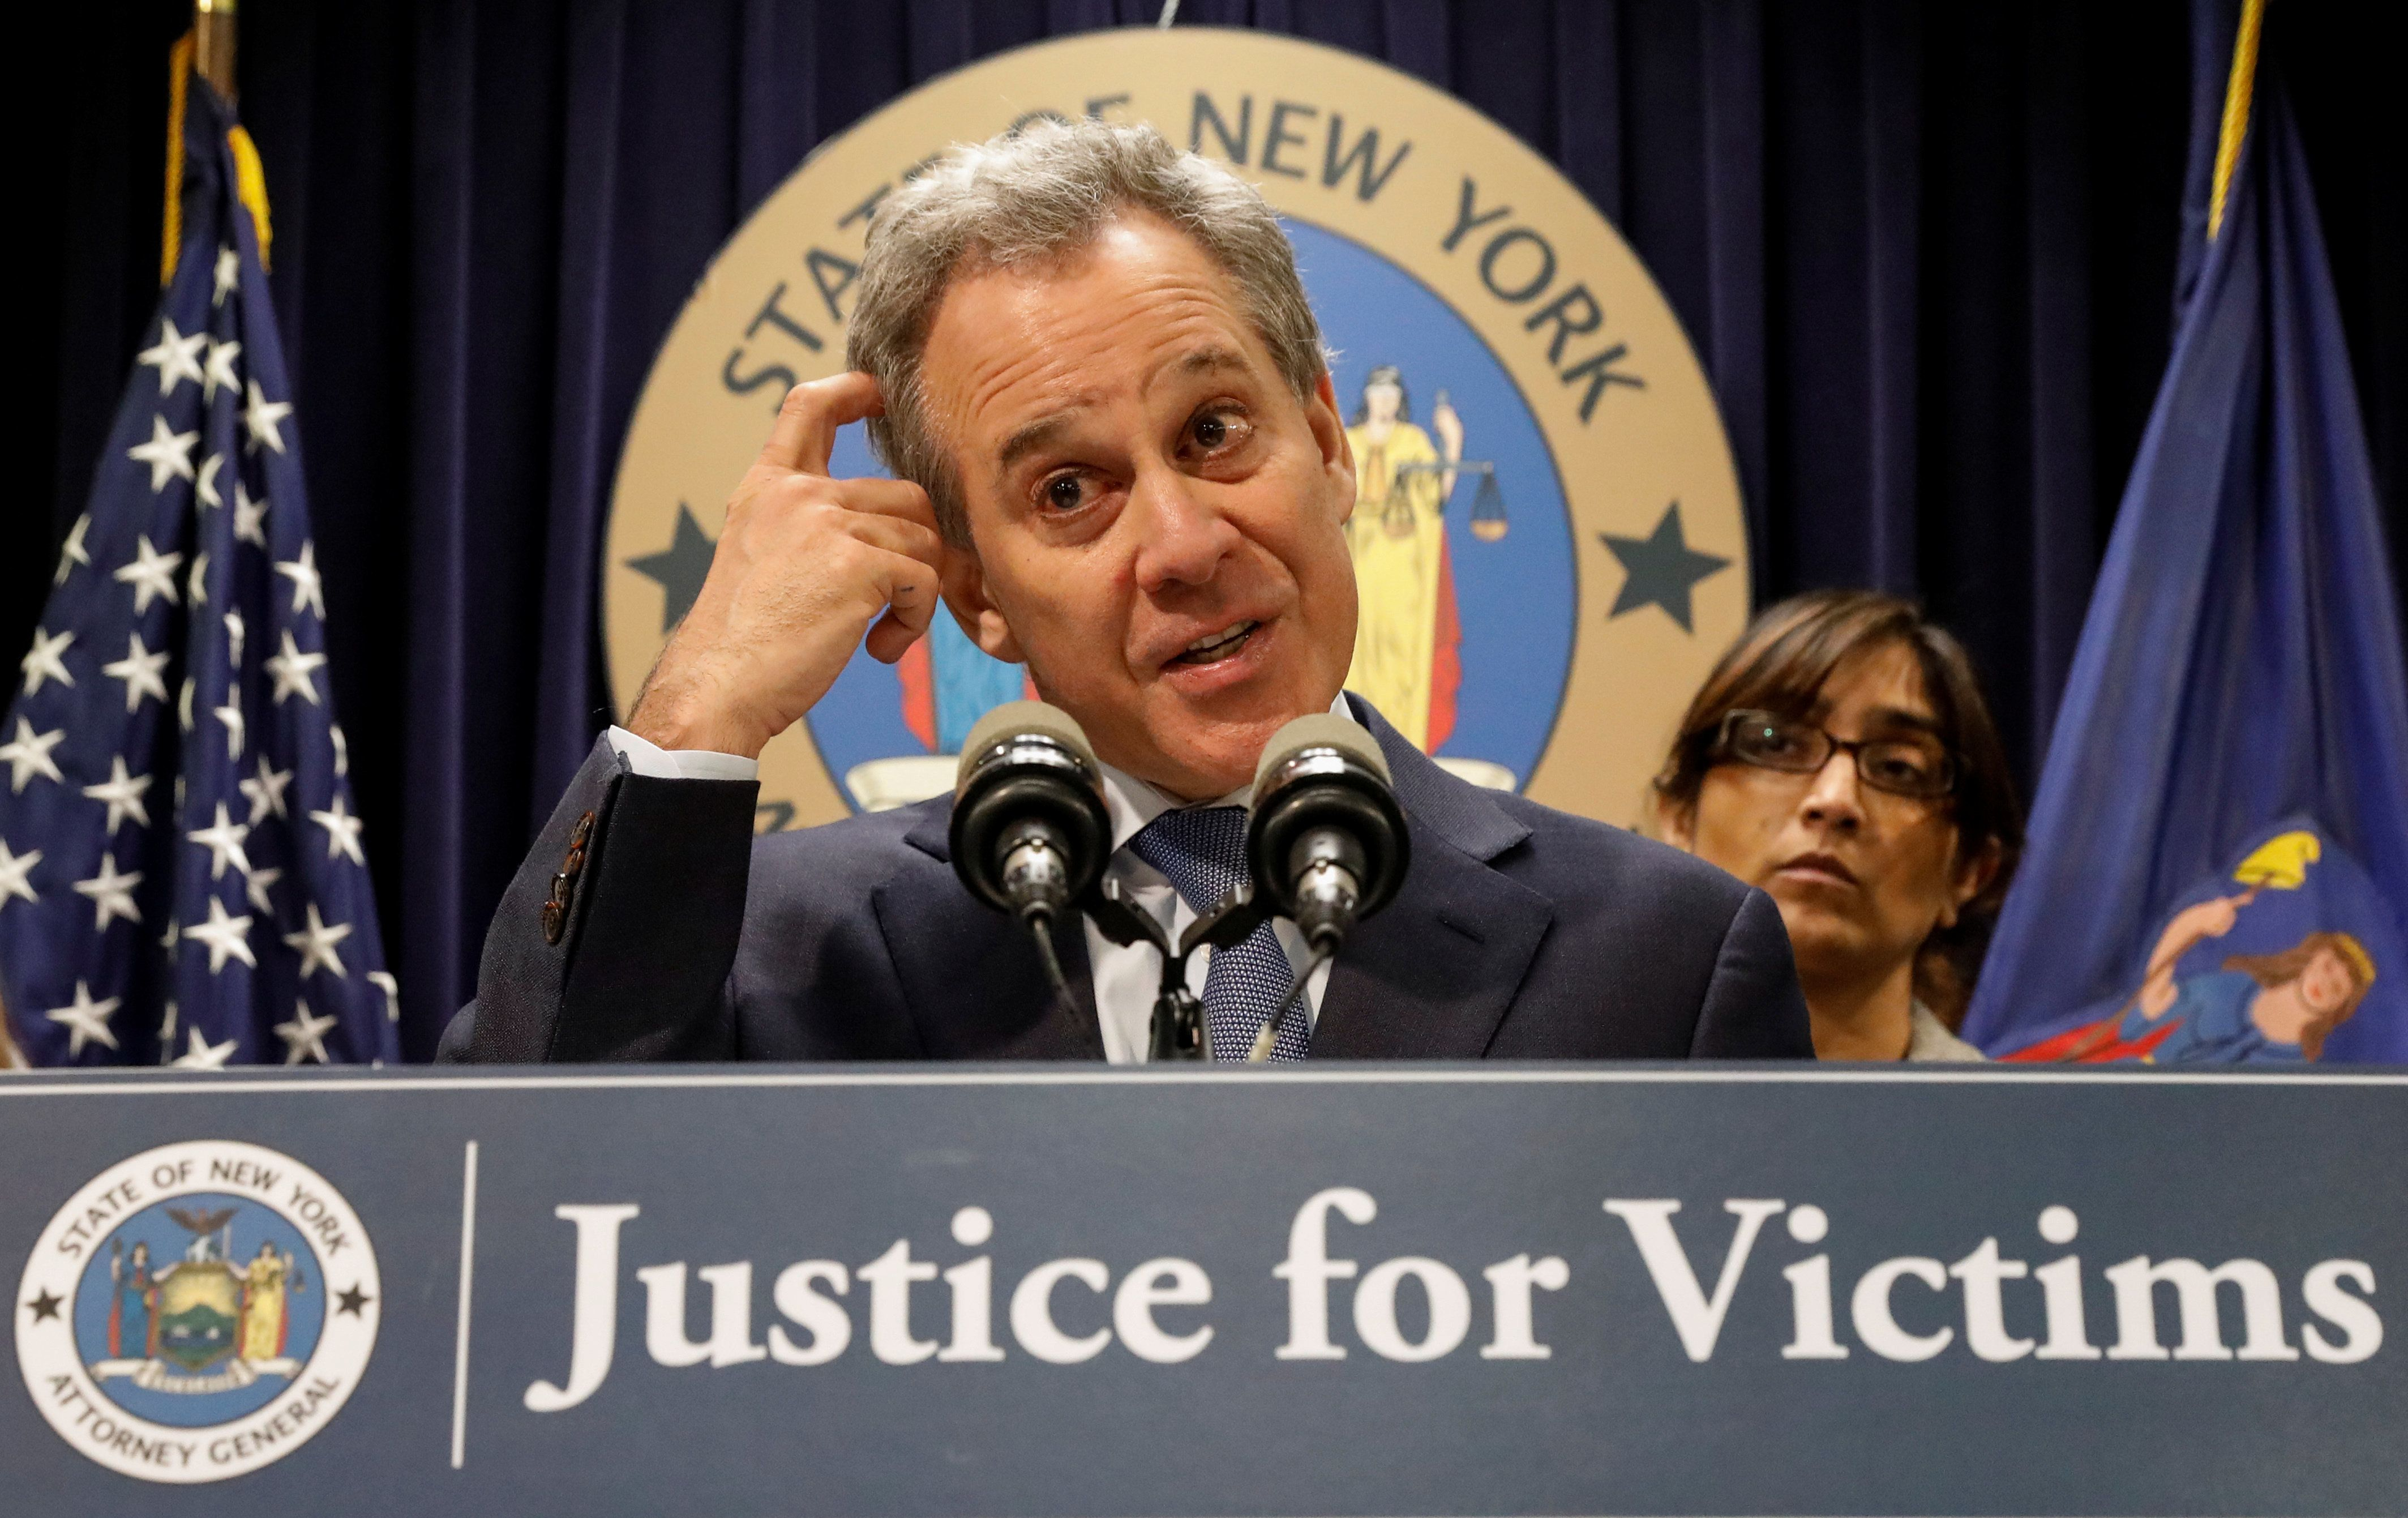 New York Attorney General Eric Schneiderman, whose resignation was effective Tuesday, speaks at a news conferenceon his